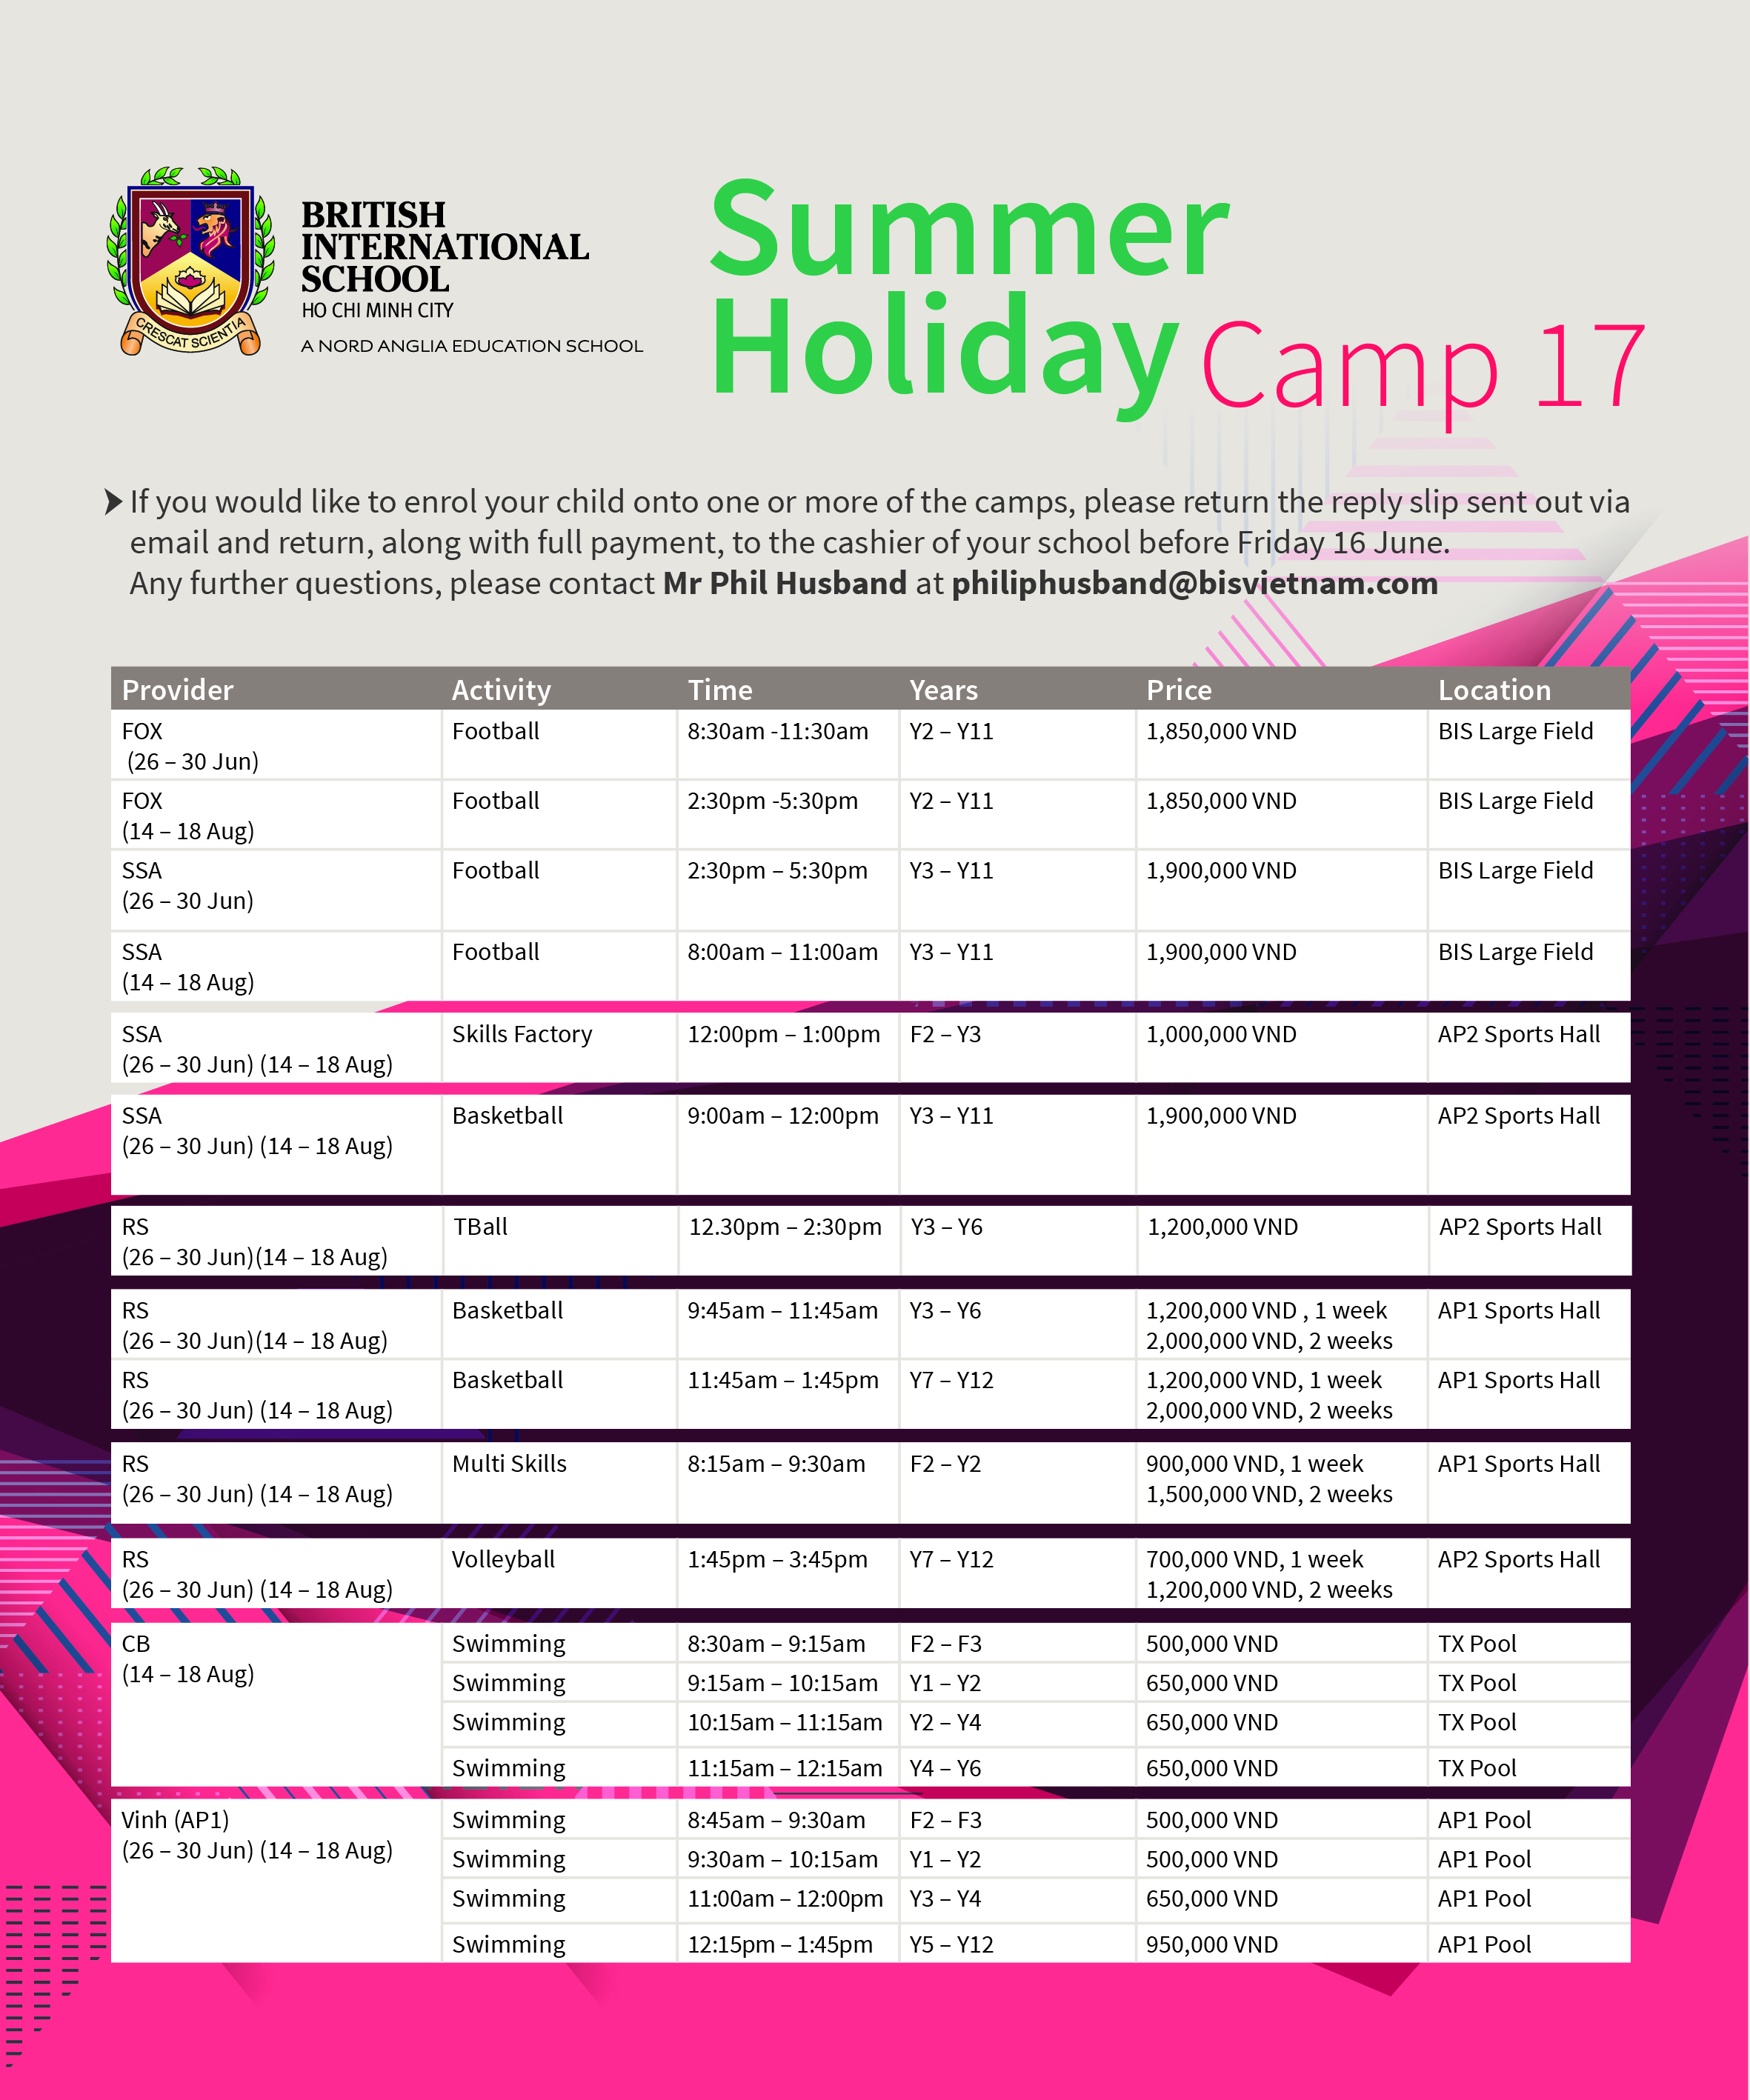 Summer Sports Holiday Camp 2017 at British International School HCMC